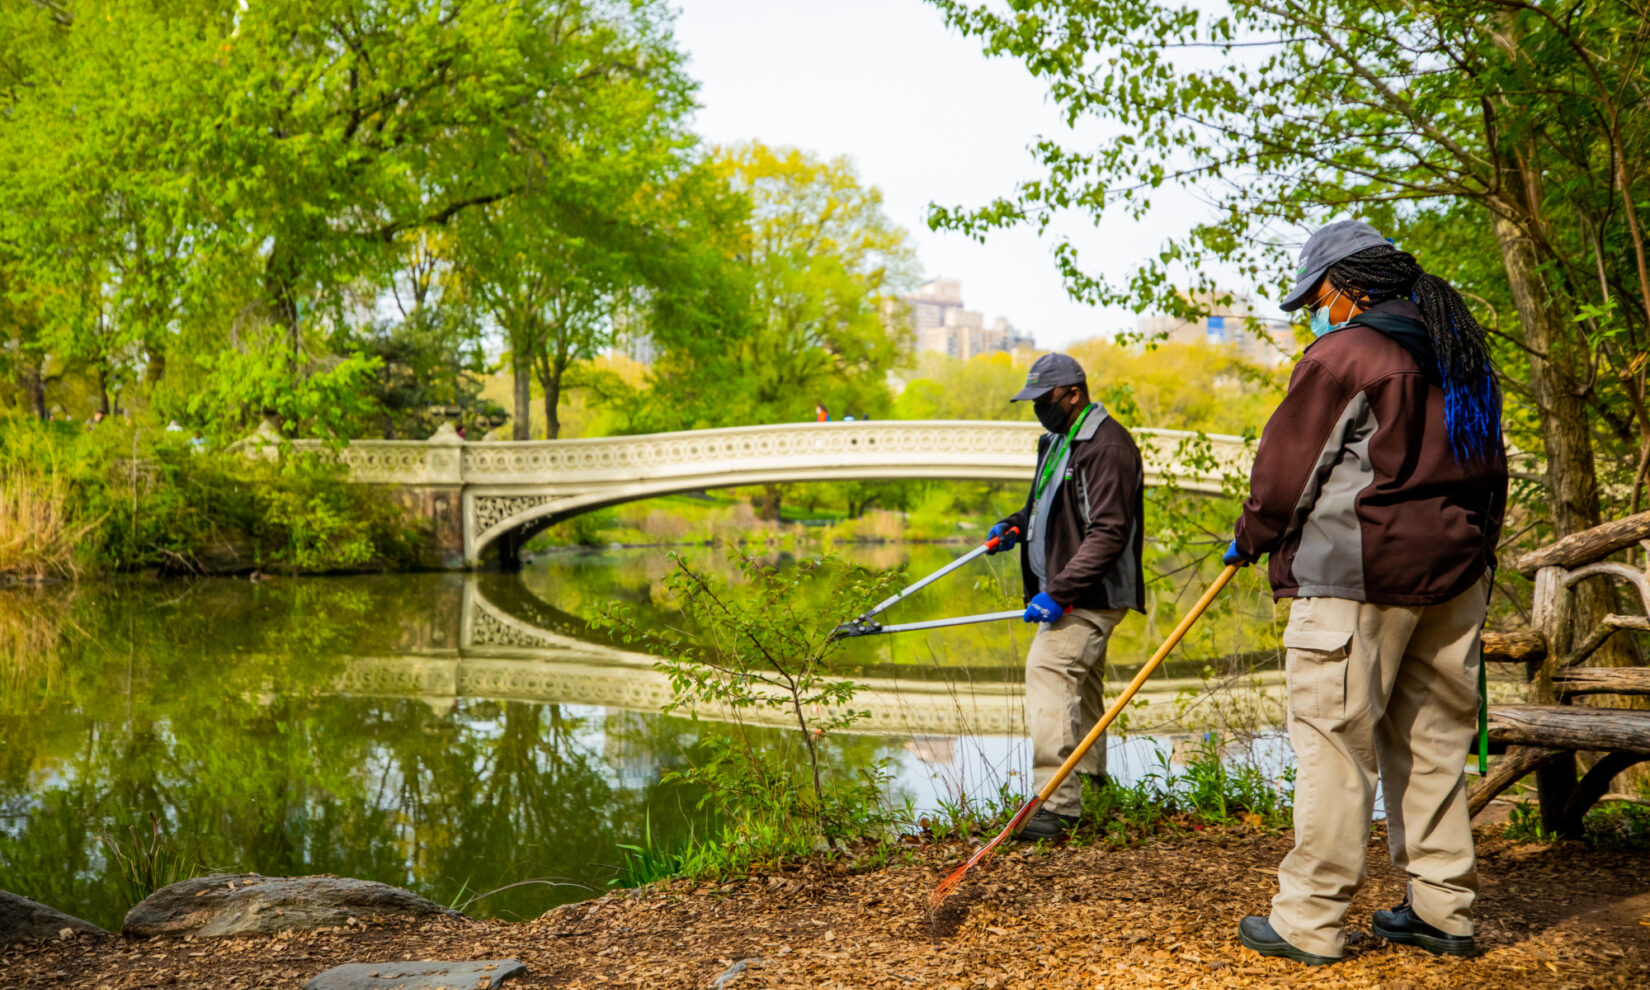 Two staff members tending to the embankment of the Lake with Bow Bridge in the background